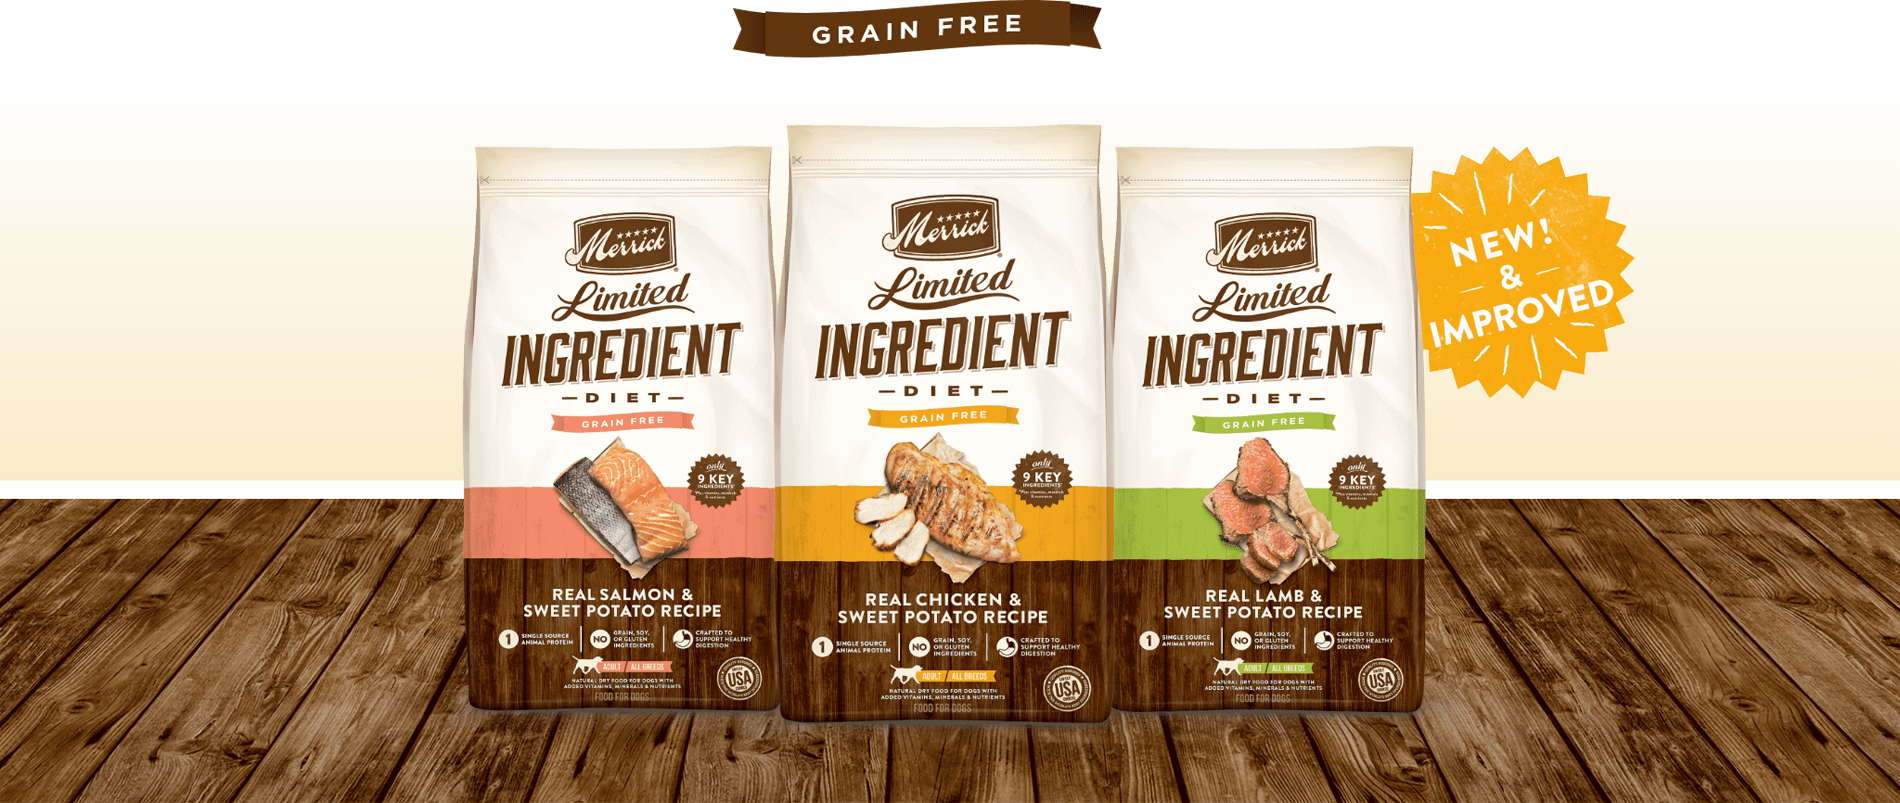 Our Grain Free Limited Ingredient Diet Dog Recipes